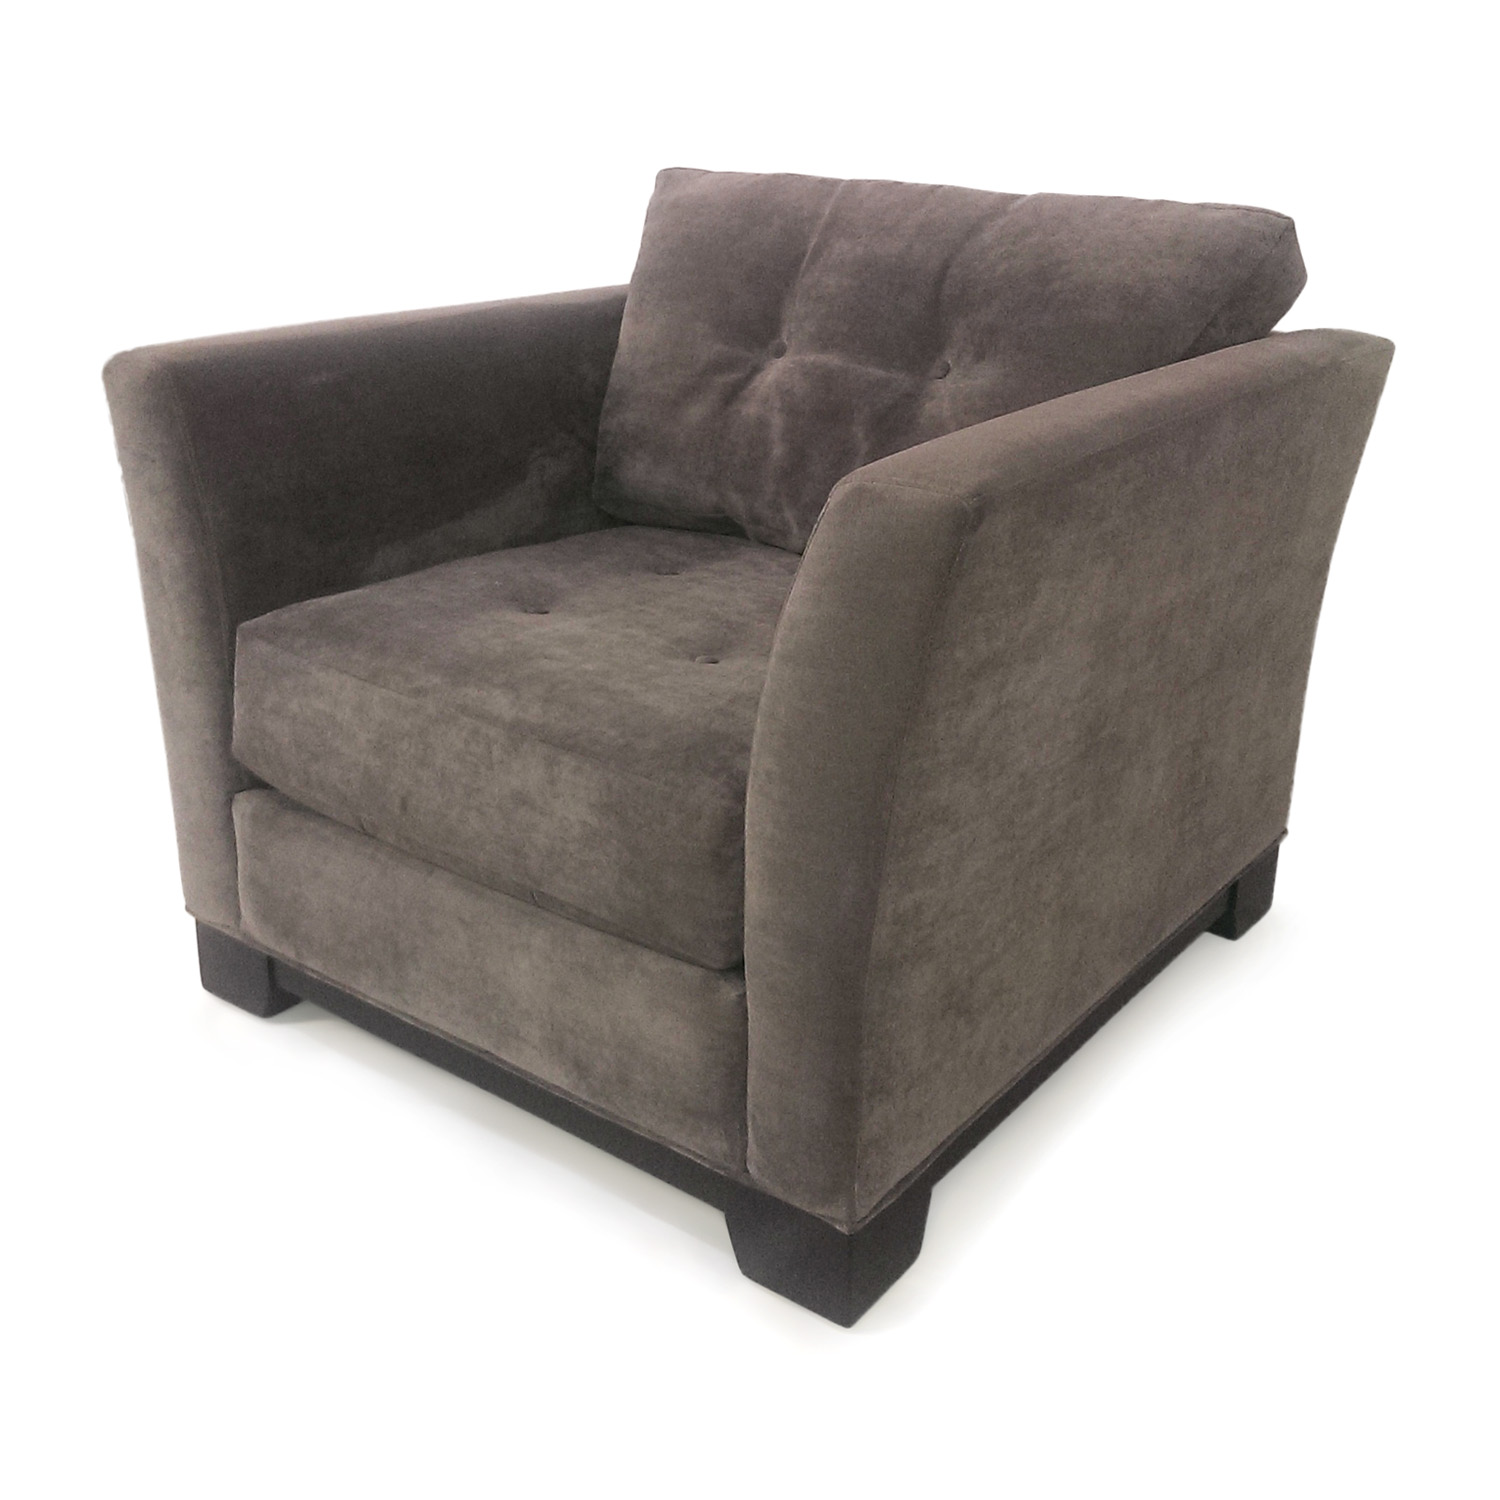 Off macy s grey tufted arm chair chairs